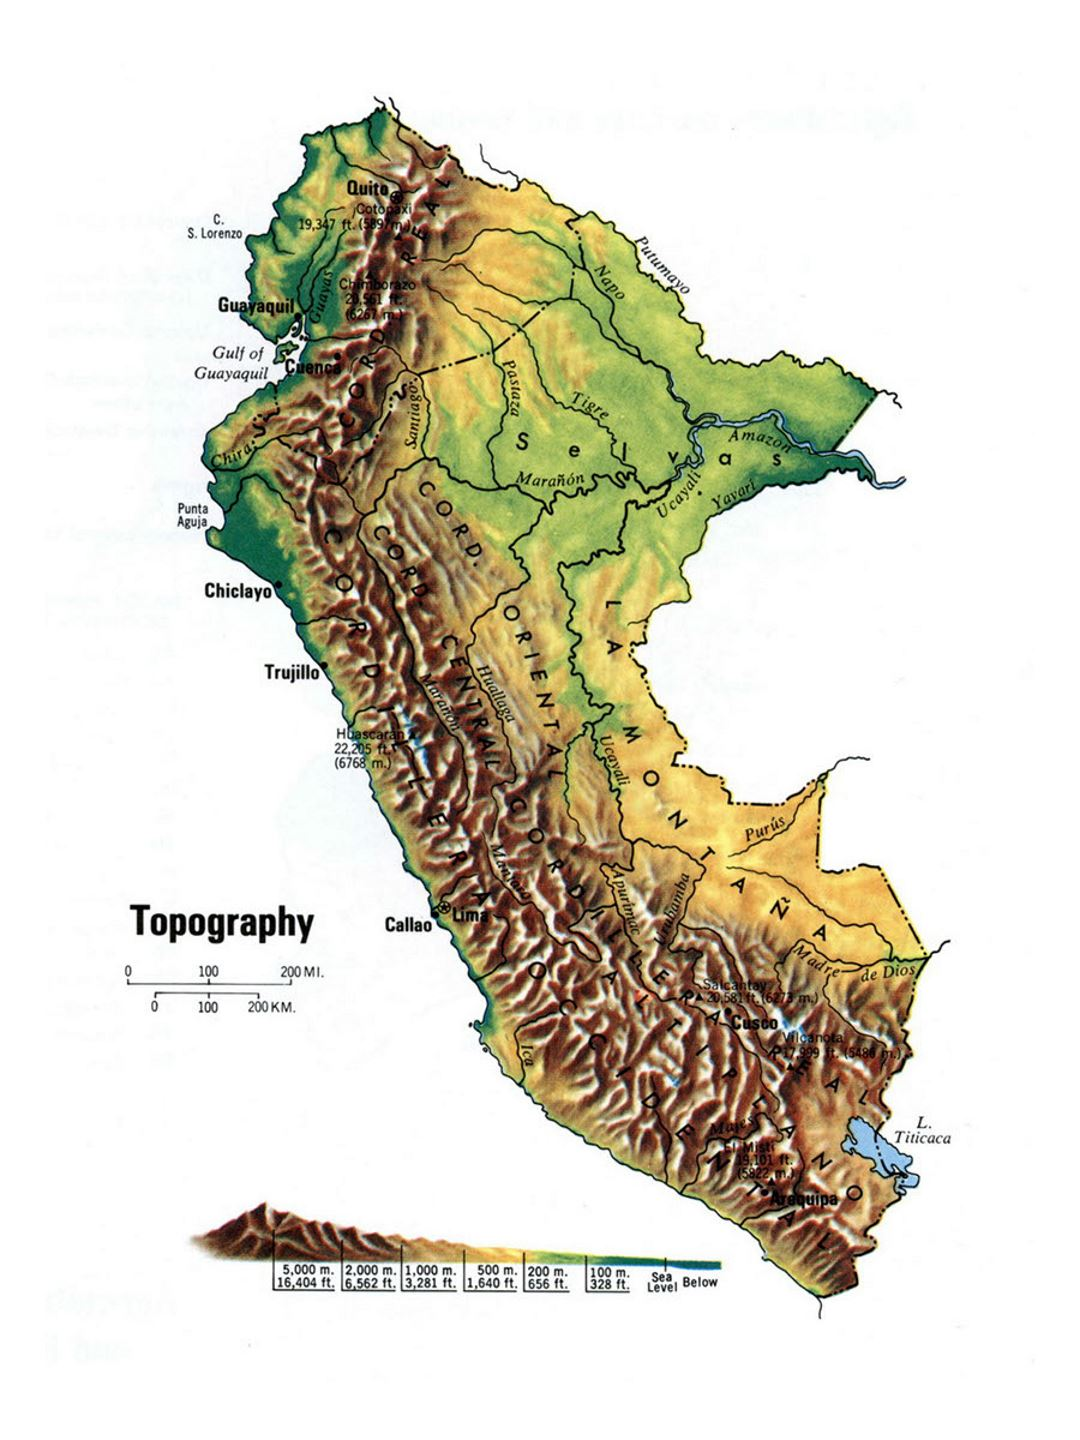 Detailed topographical map of Peru